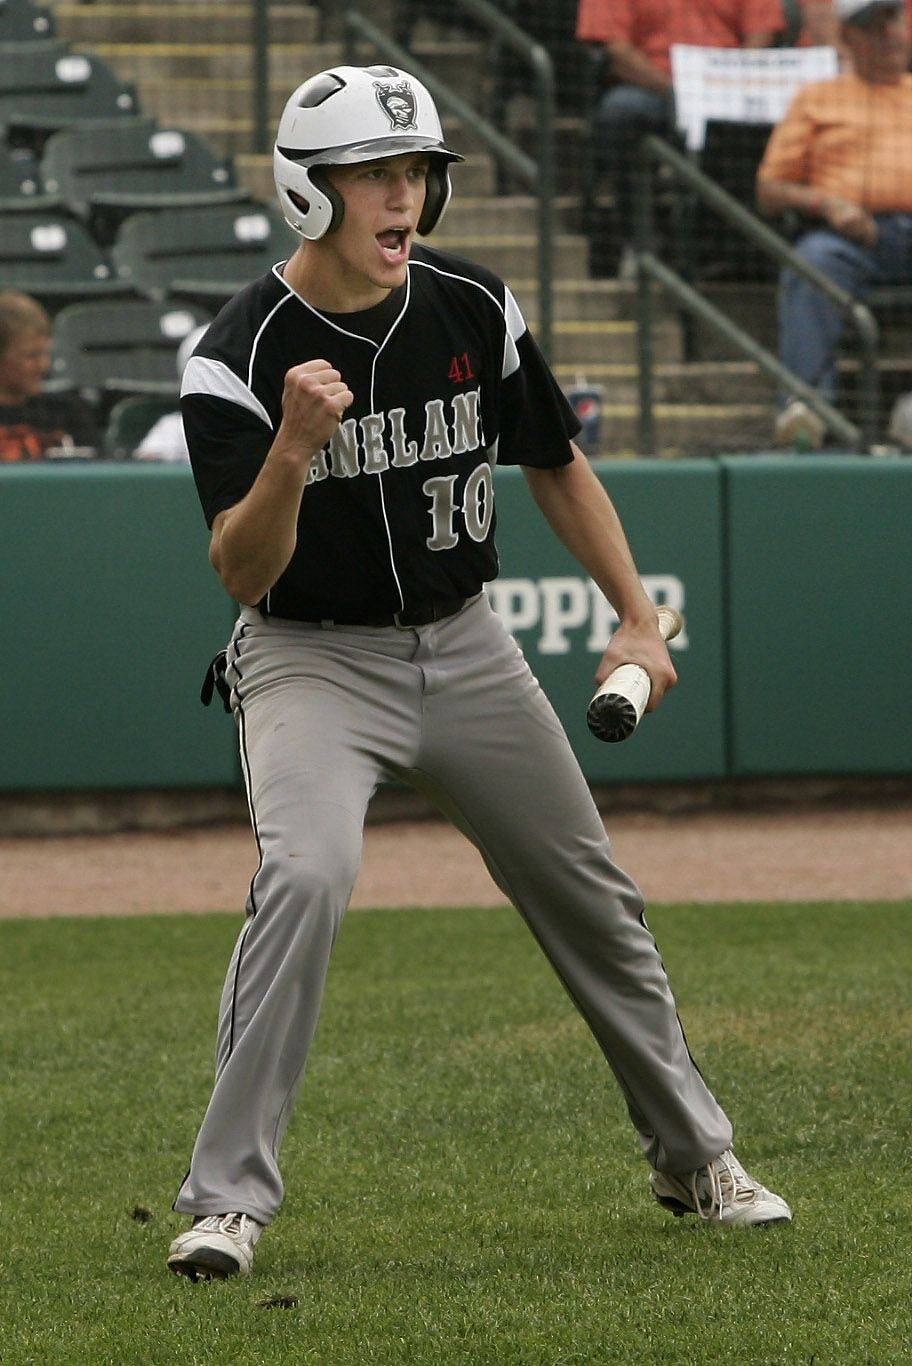 Kaneland runner Corey Landers cheers on his teammates after scoring a run at Silver Cross Field in Joliet.